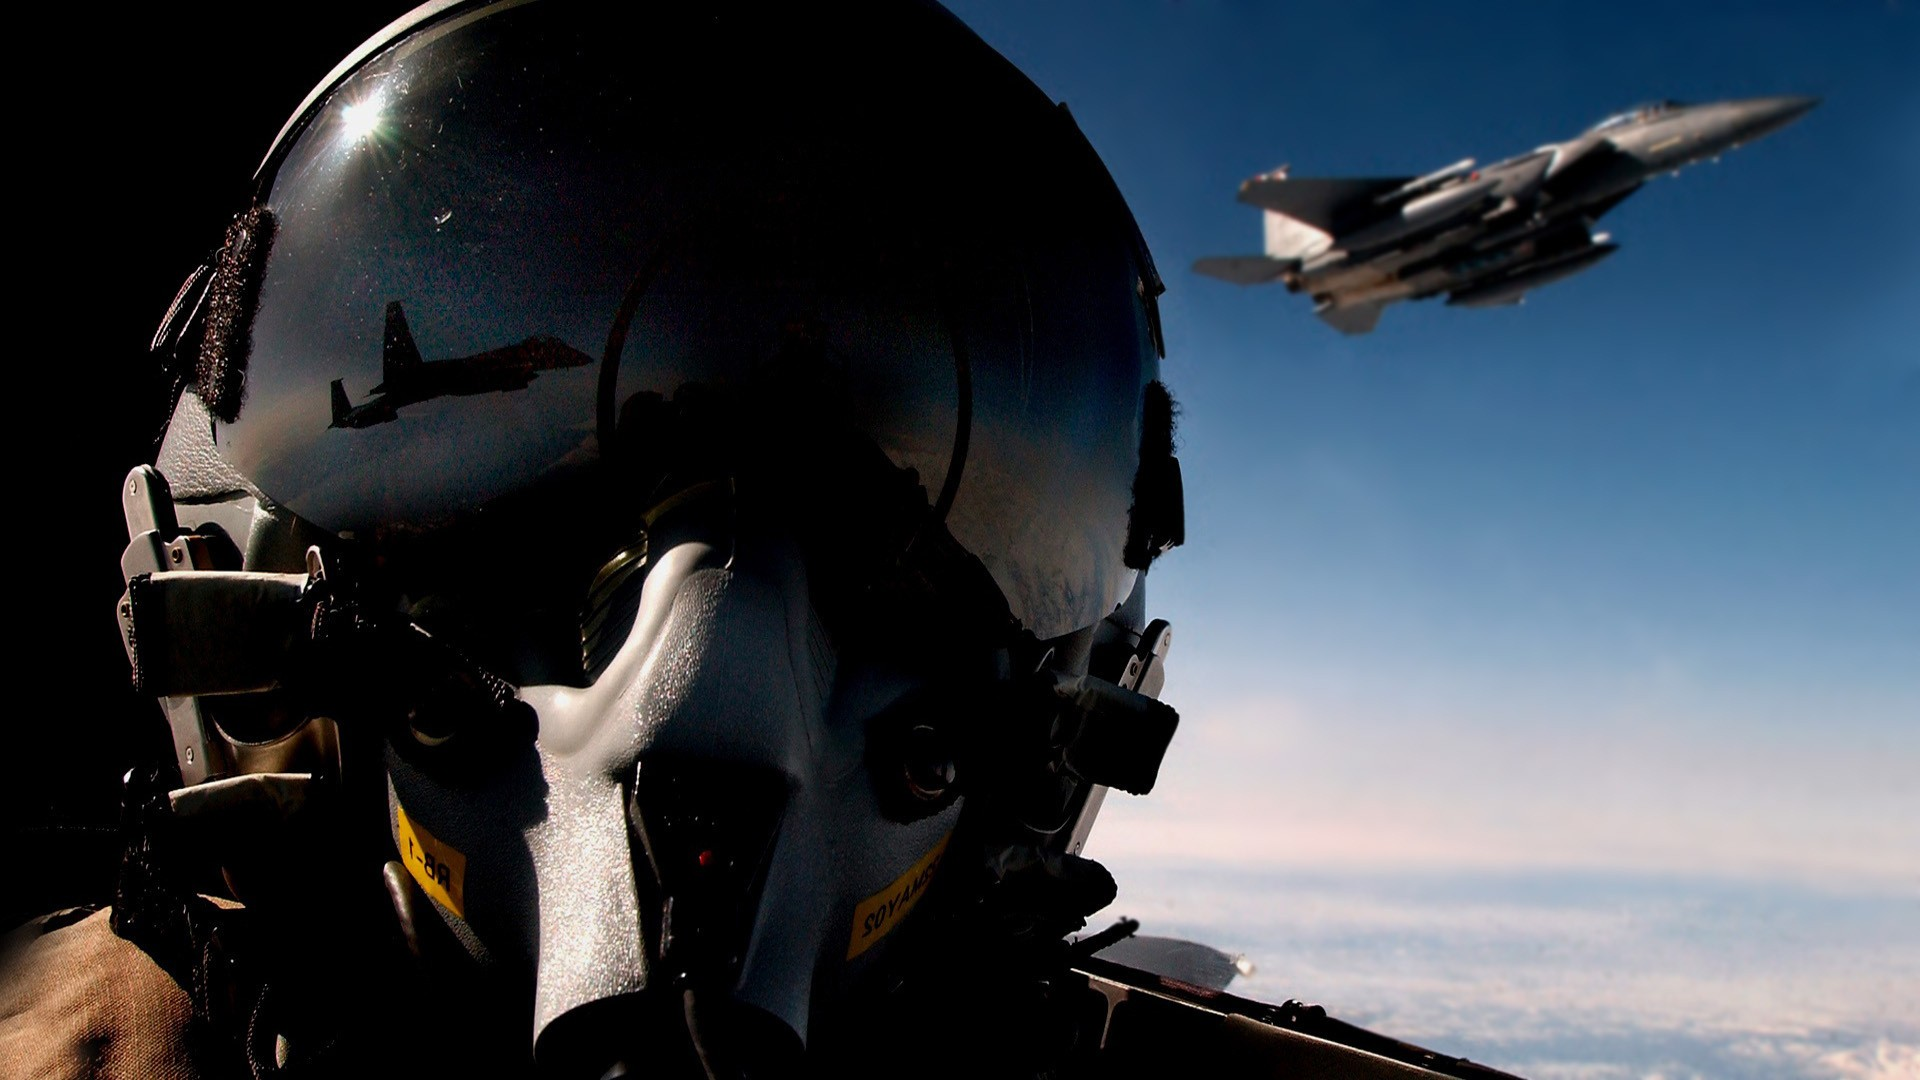 The military pilot in a helmet at work, photo wallpaper